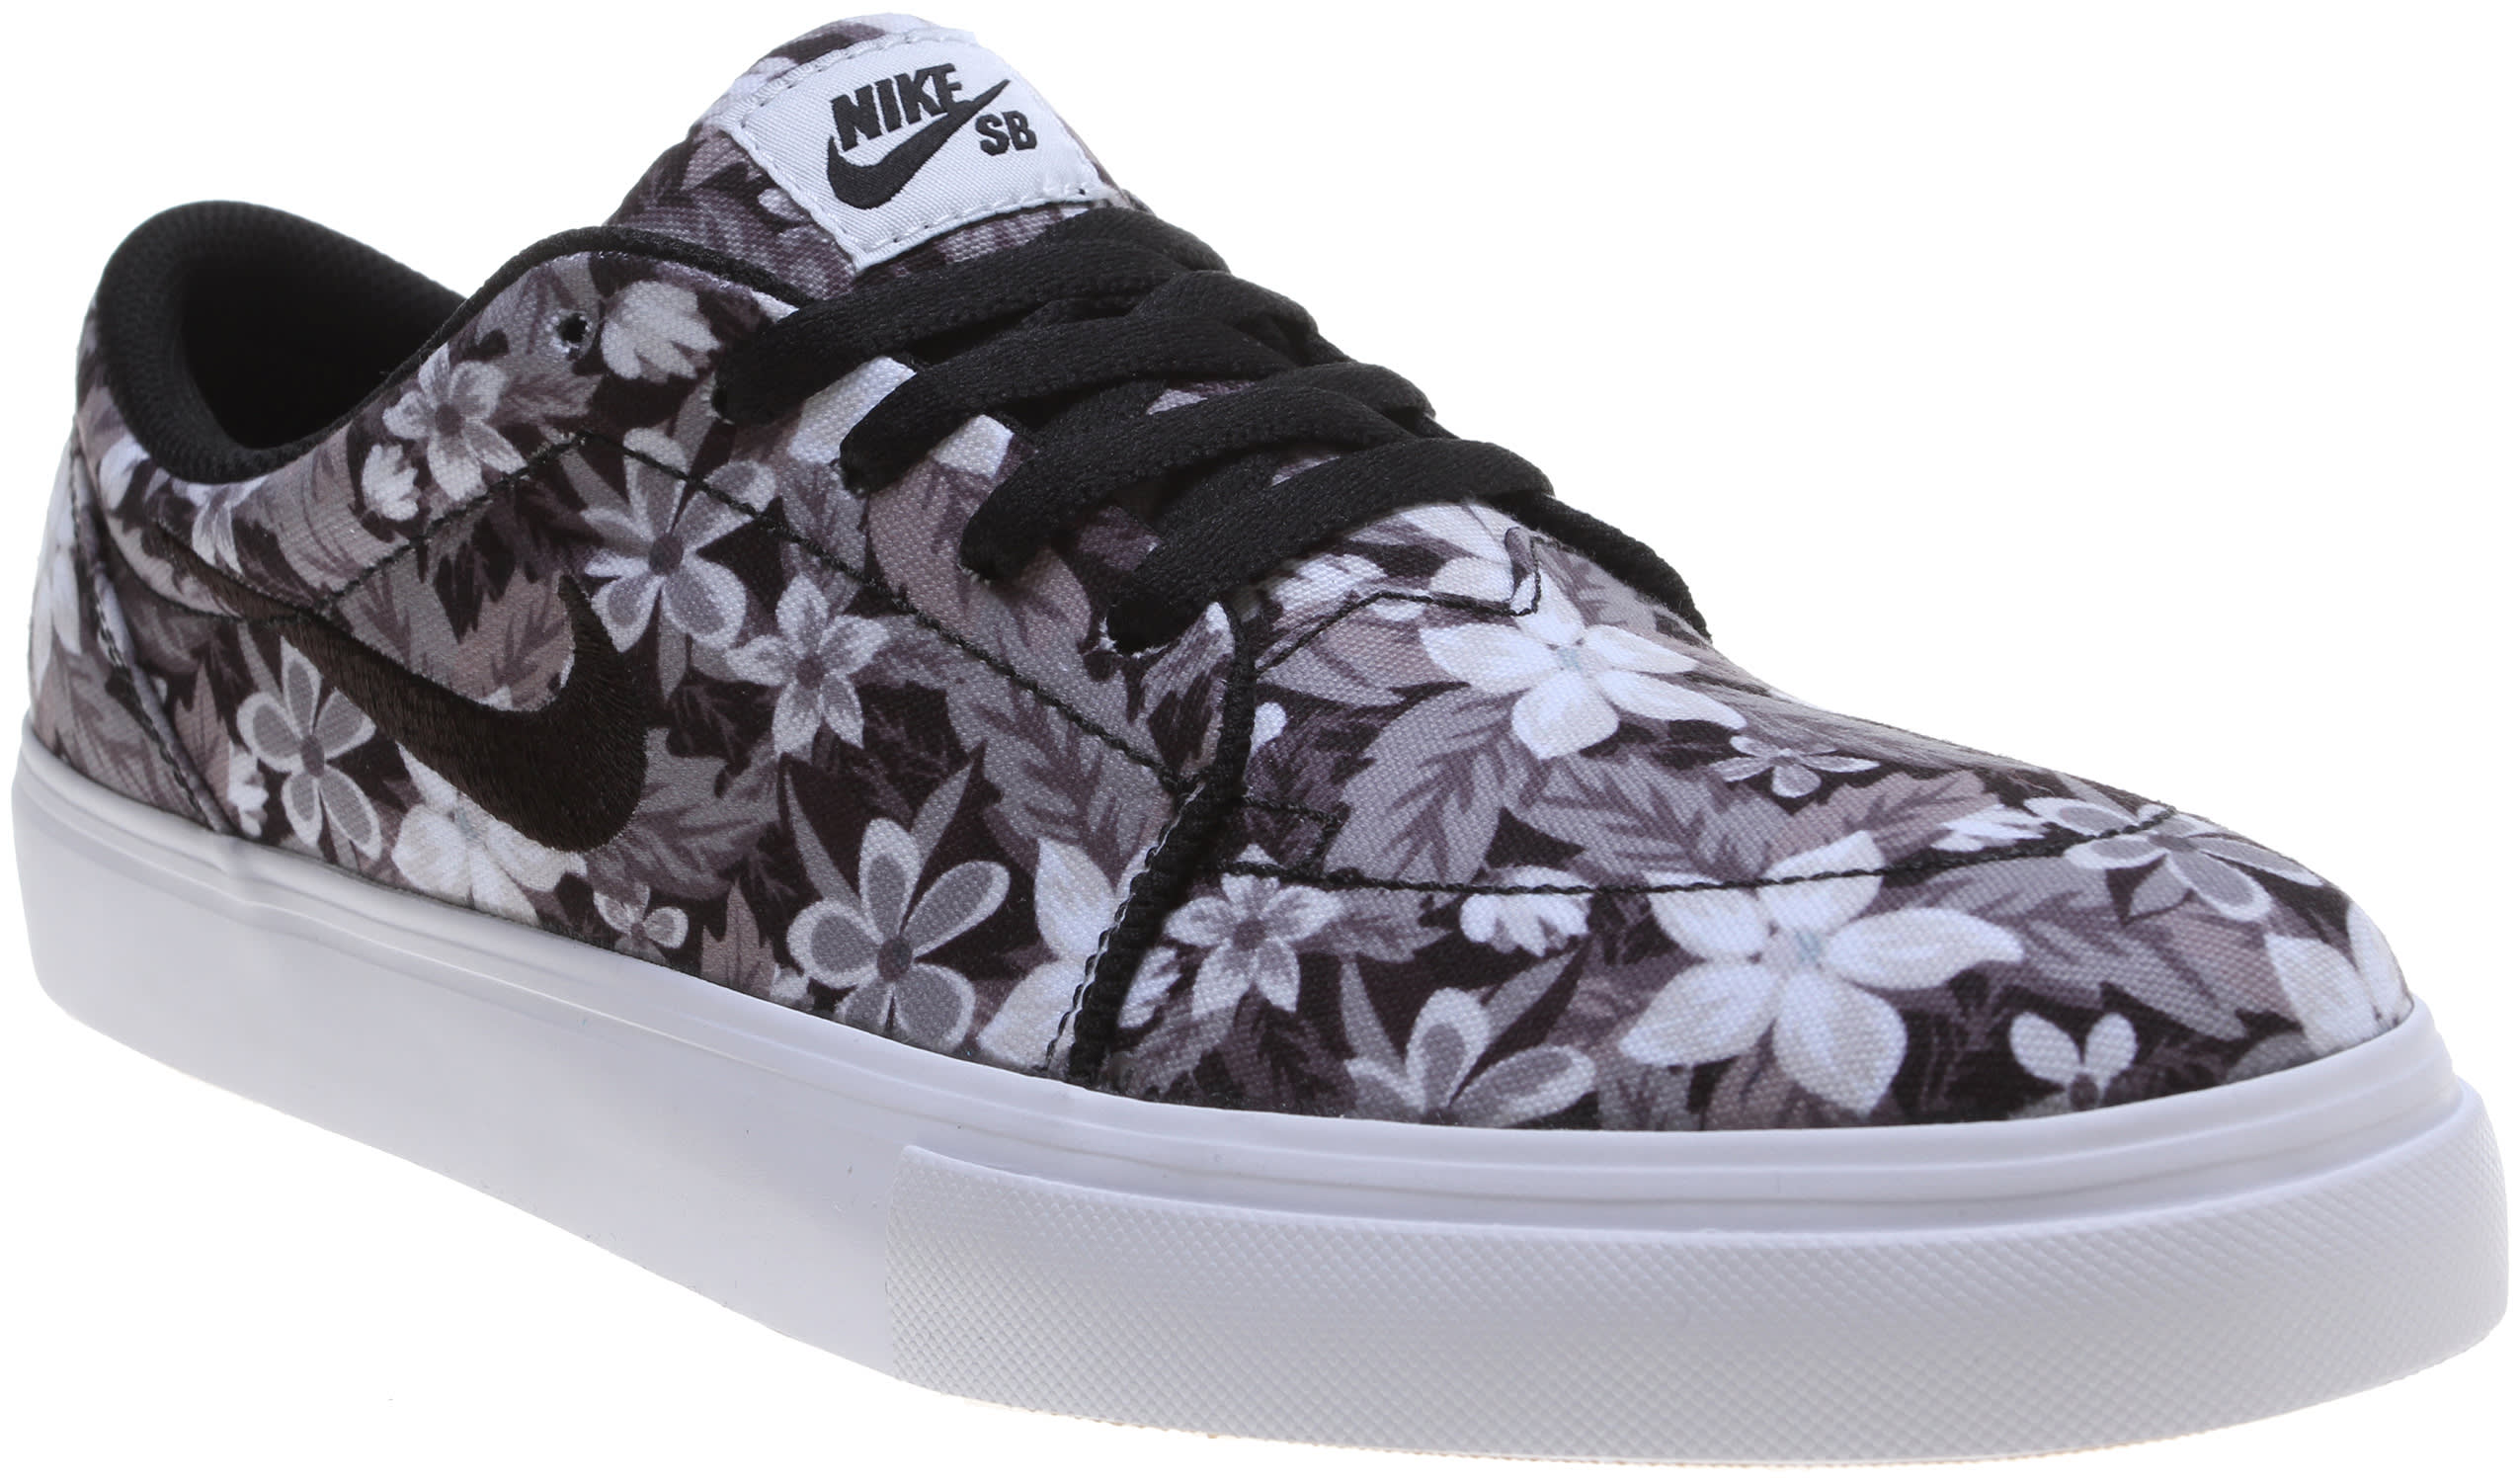 Nike Satire Canvas Premium Skate Shoes - thumbnail 2 27c9632bd